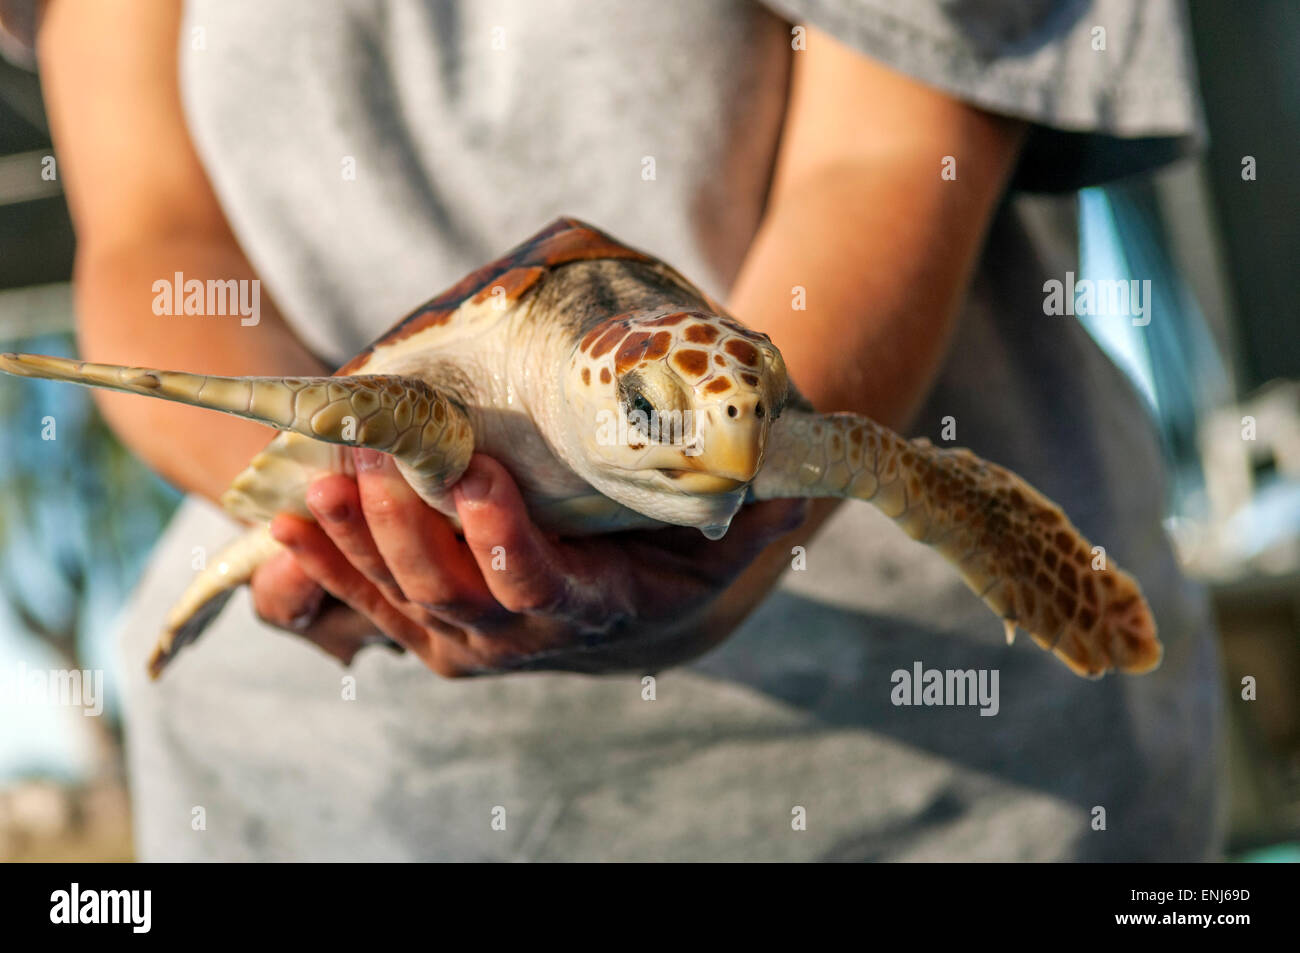 A vet holding a sick and injured turtle at The Turtle Hospital. Marathon, Florida. USA - Stock Image